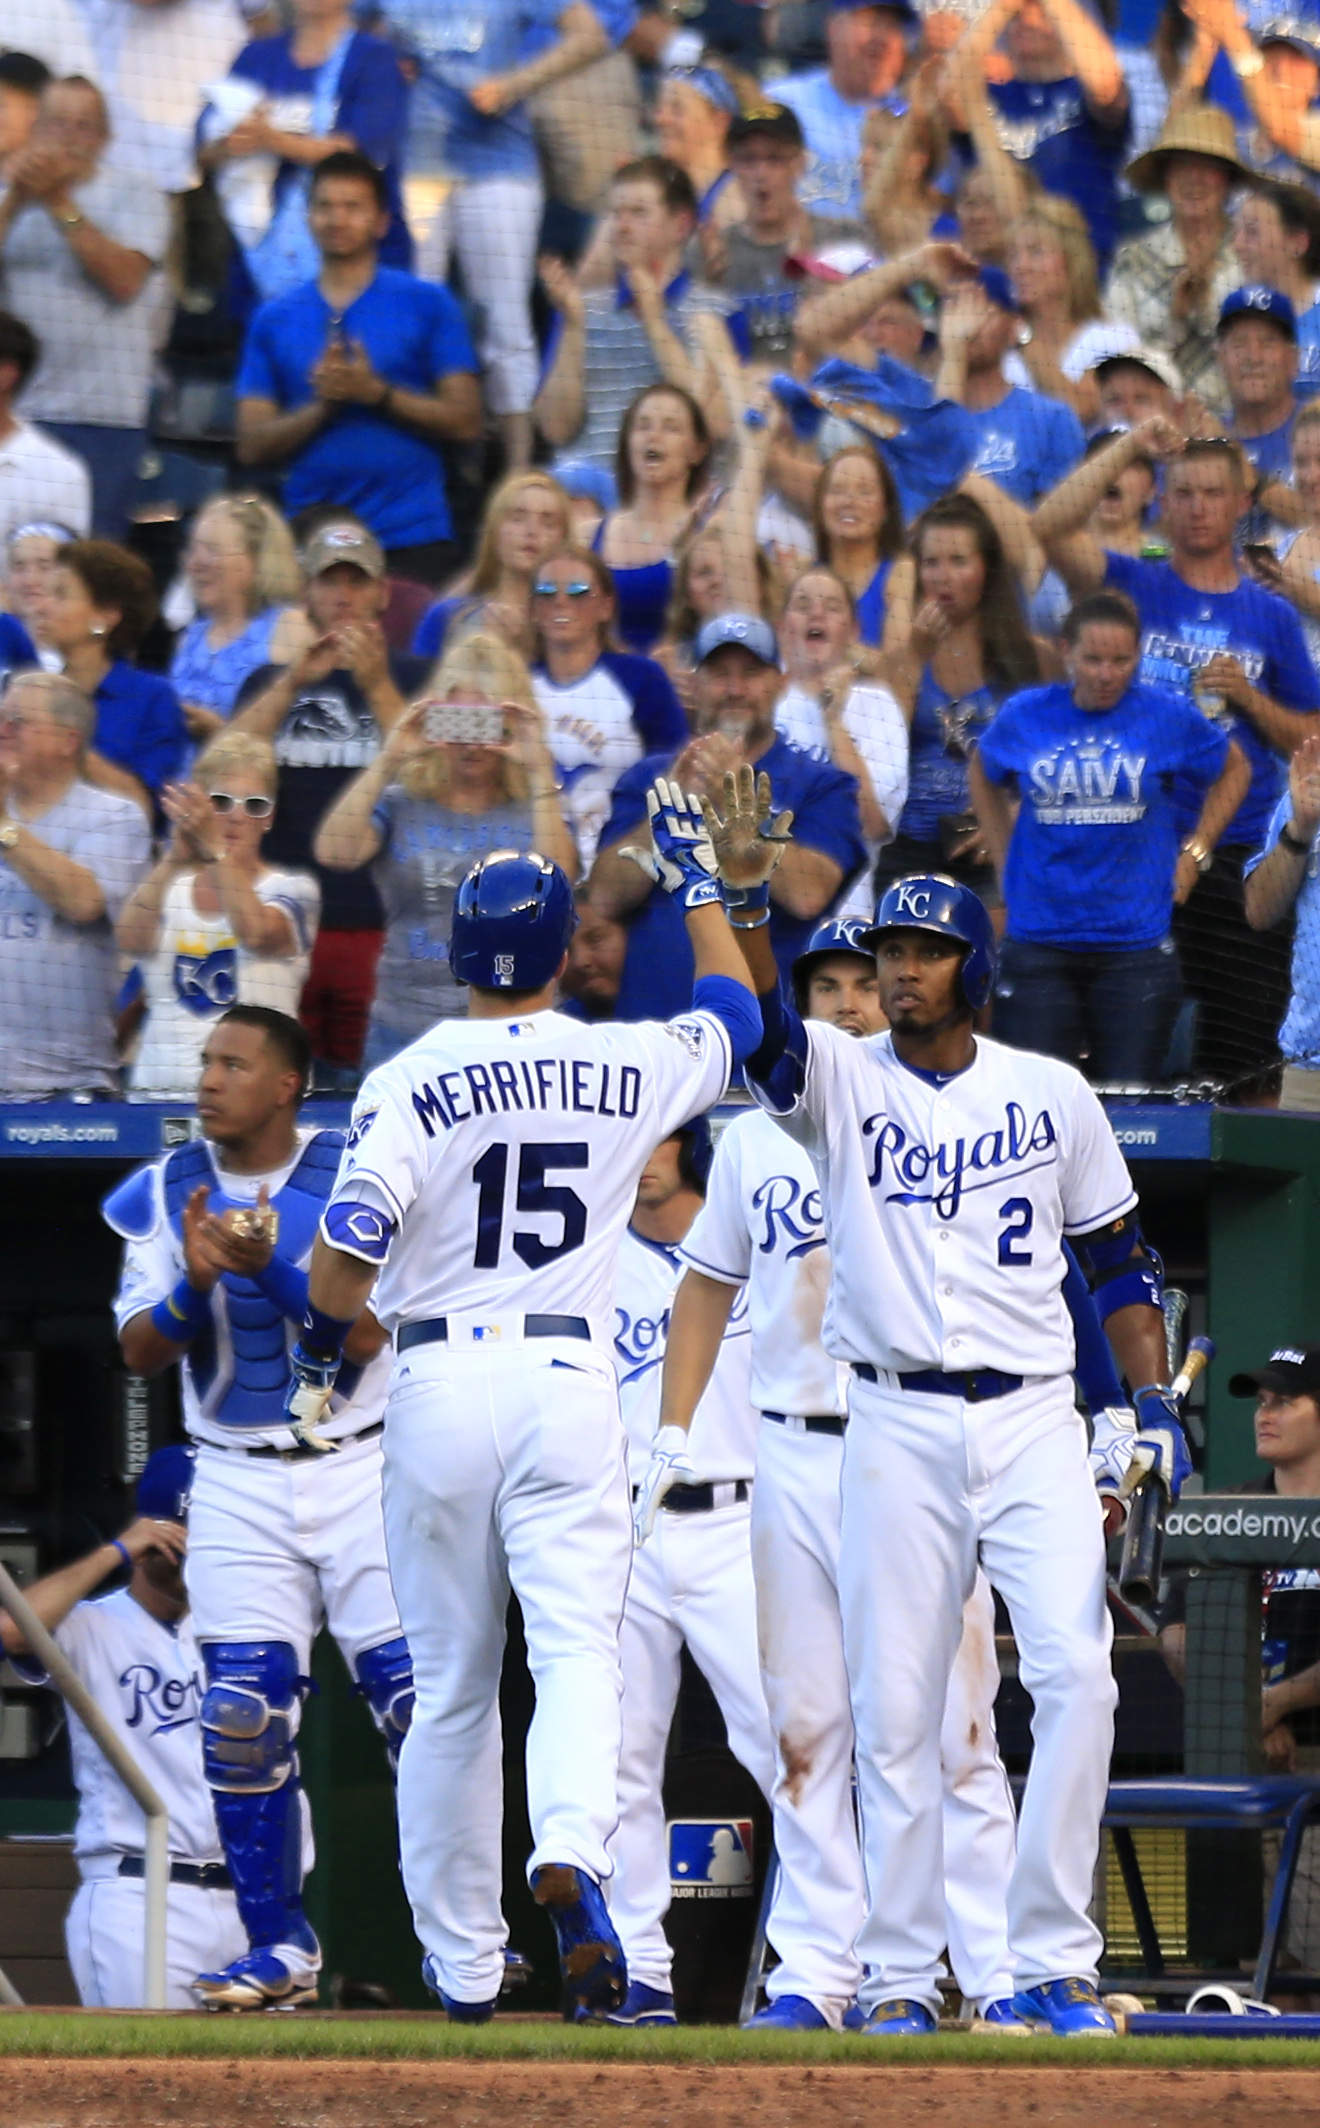 Kansas City Royals' Whit Merrifield (15) is congratulated by teammate Alcides Escobar (2) after his solo home run off Cleveland Indians starting pitcher Josh Tomlin during the third inning of a baseball game at Kauffman Stadium in Kansas City, Mo., Tuesda